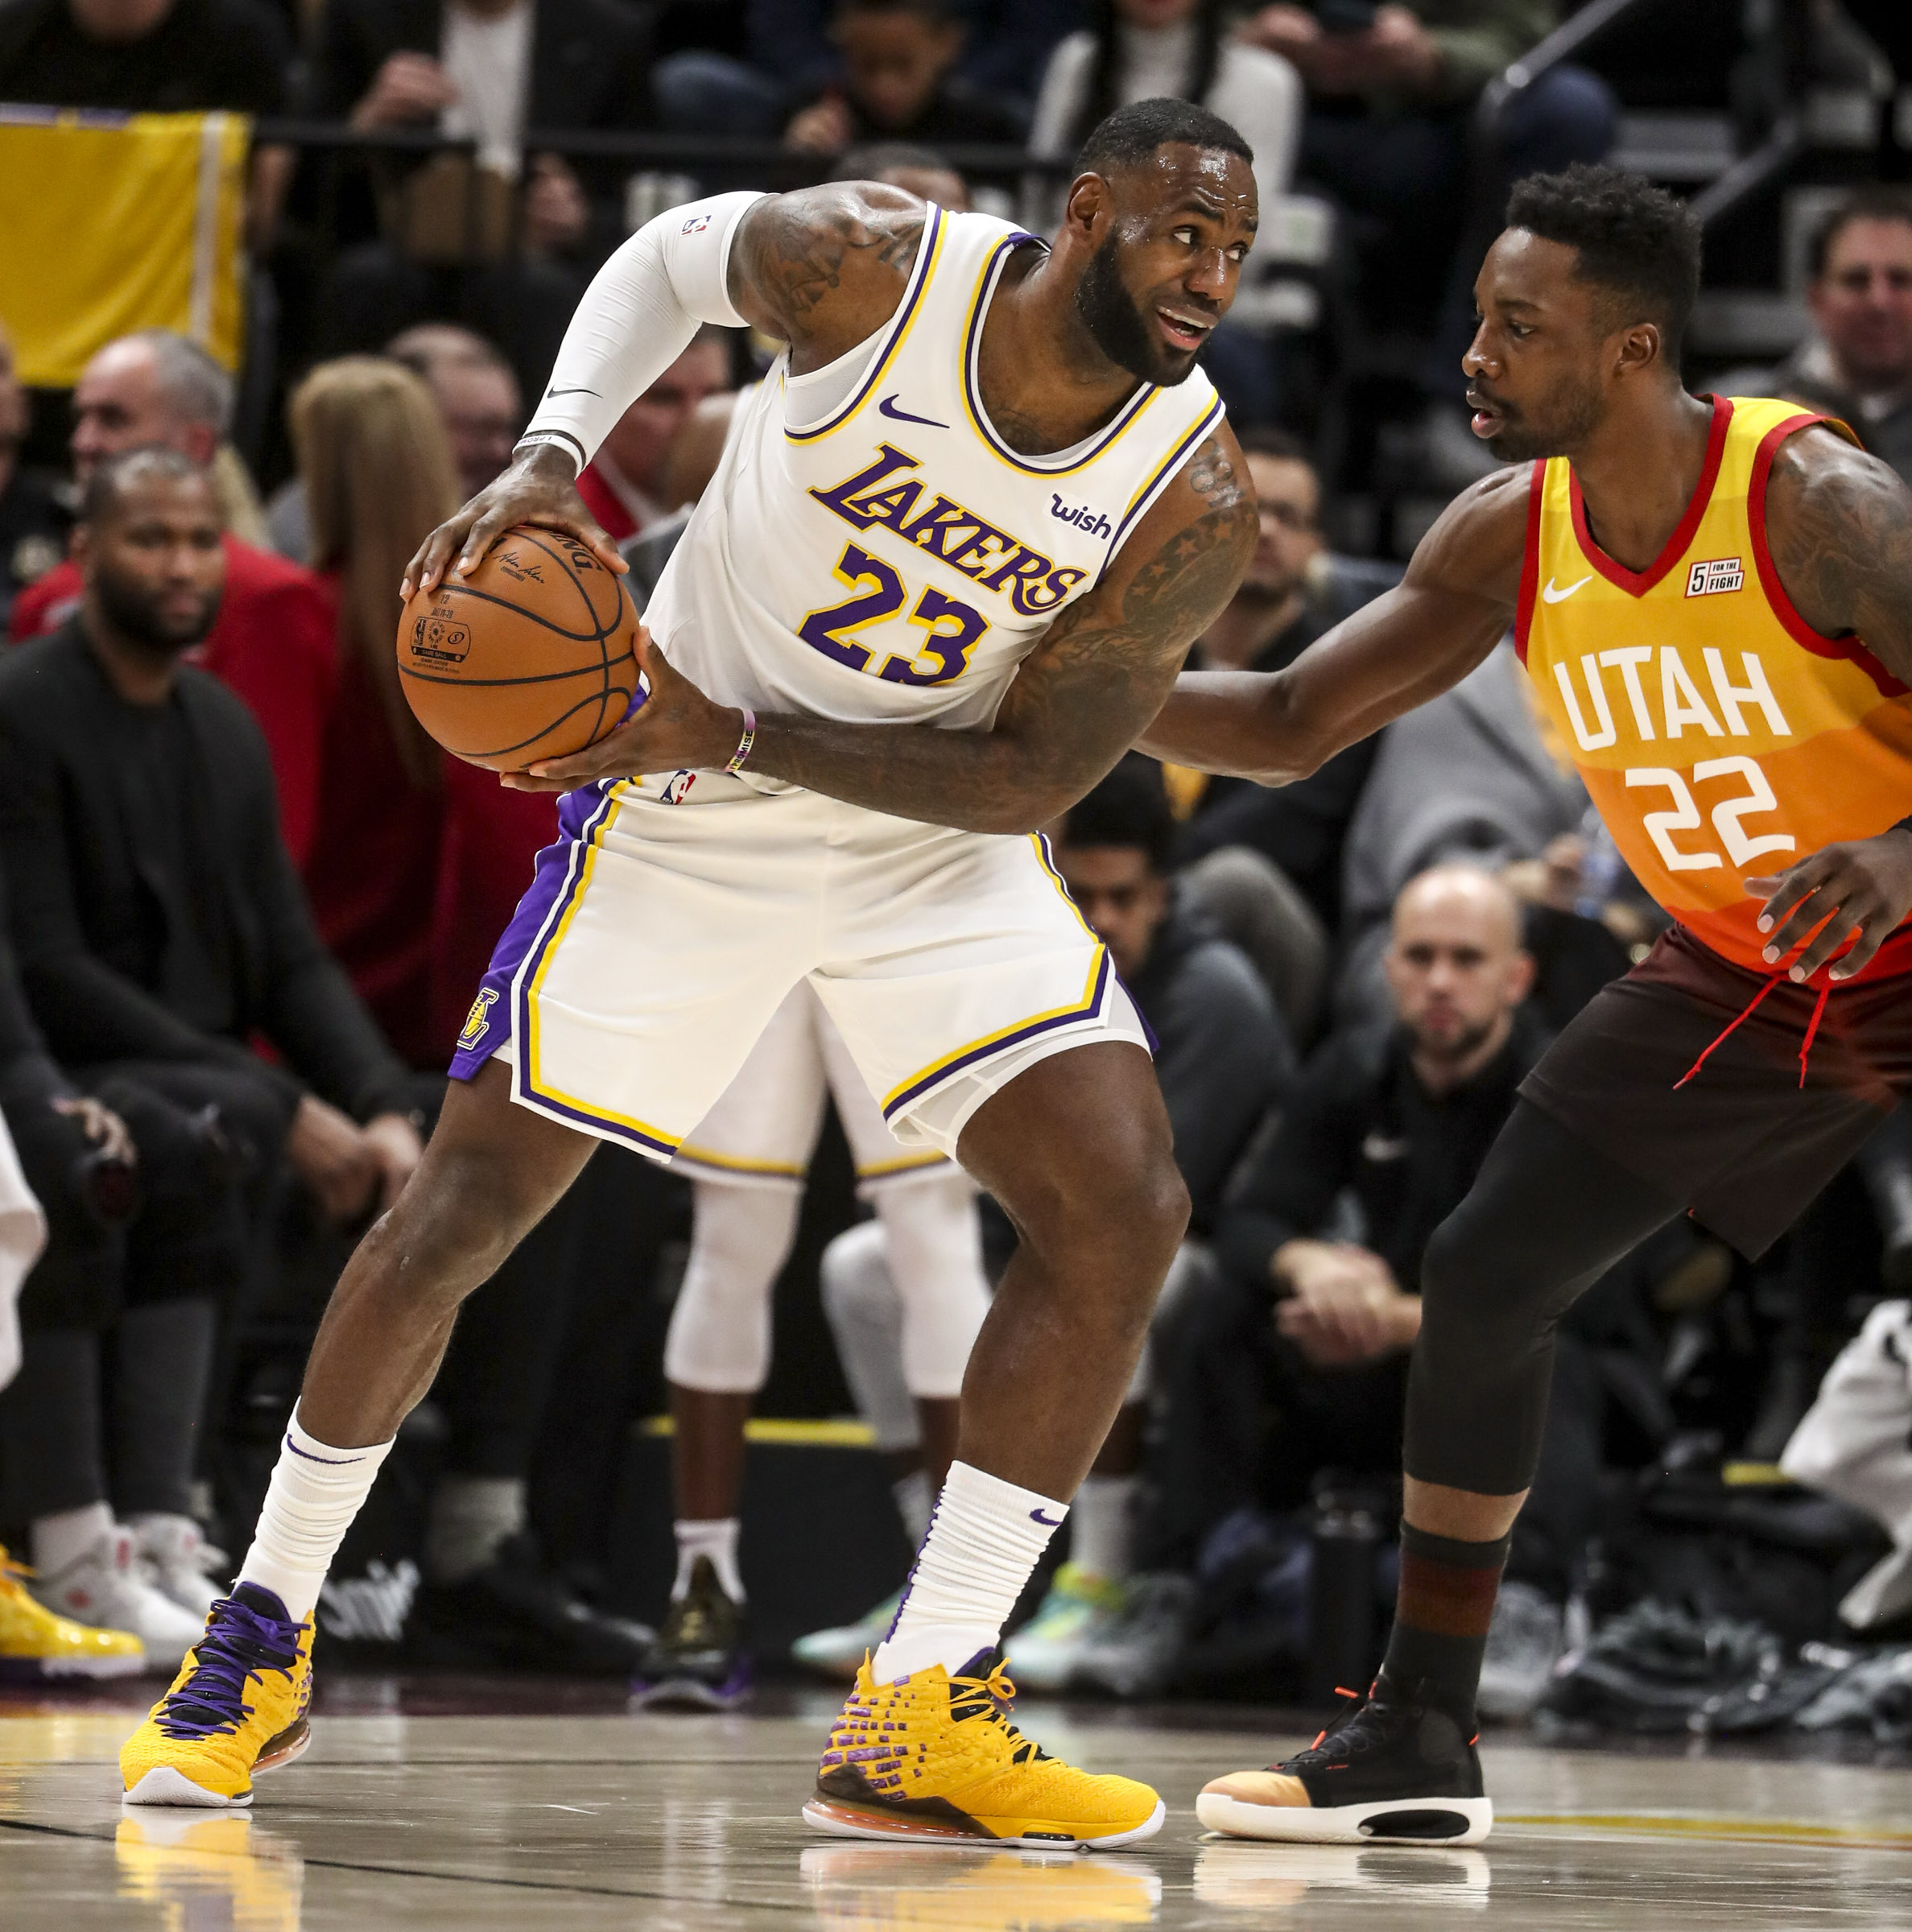 Los Angeles Lakers forward LeBron James (23) looks to drive on Utah Jazz forward Jeff Green (22) during an NBA game at Vivint Arena in Salt Lake City on Wednesday, Dec. 4, 2019.